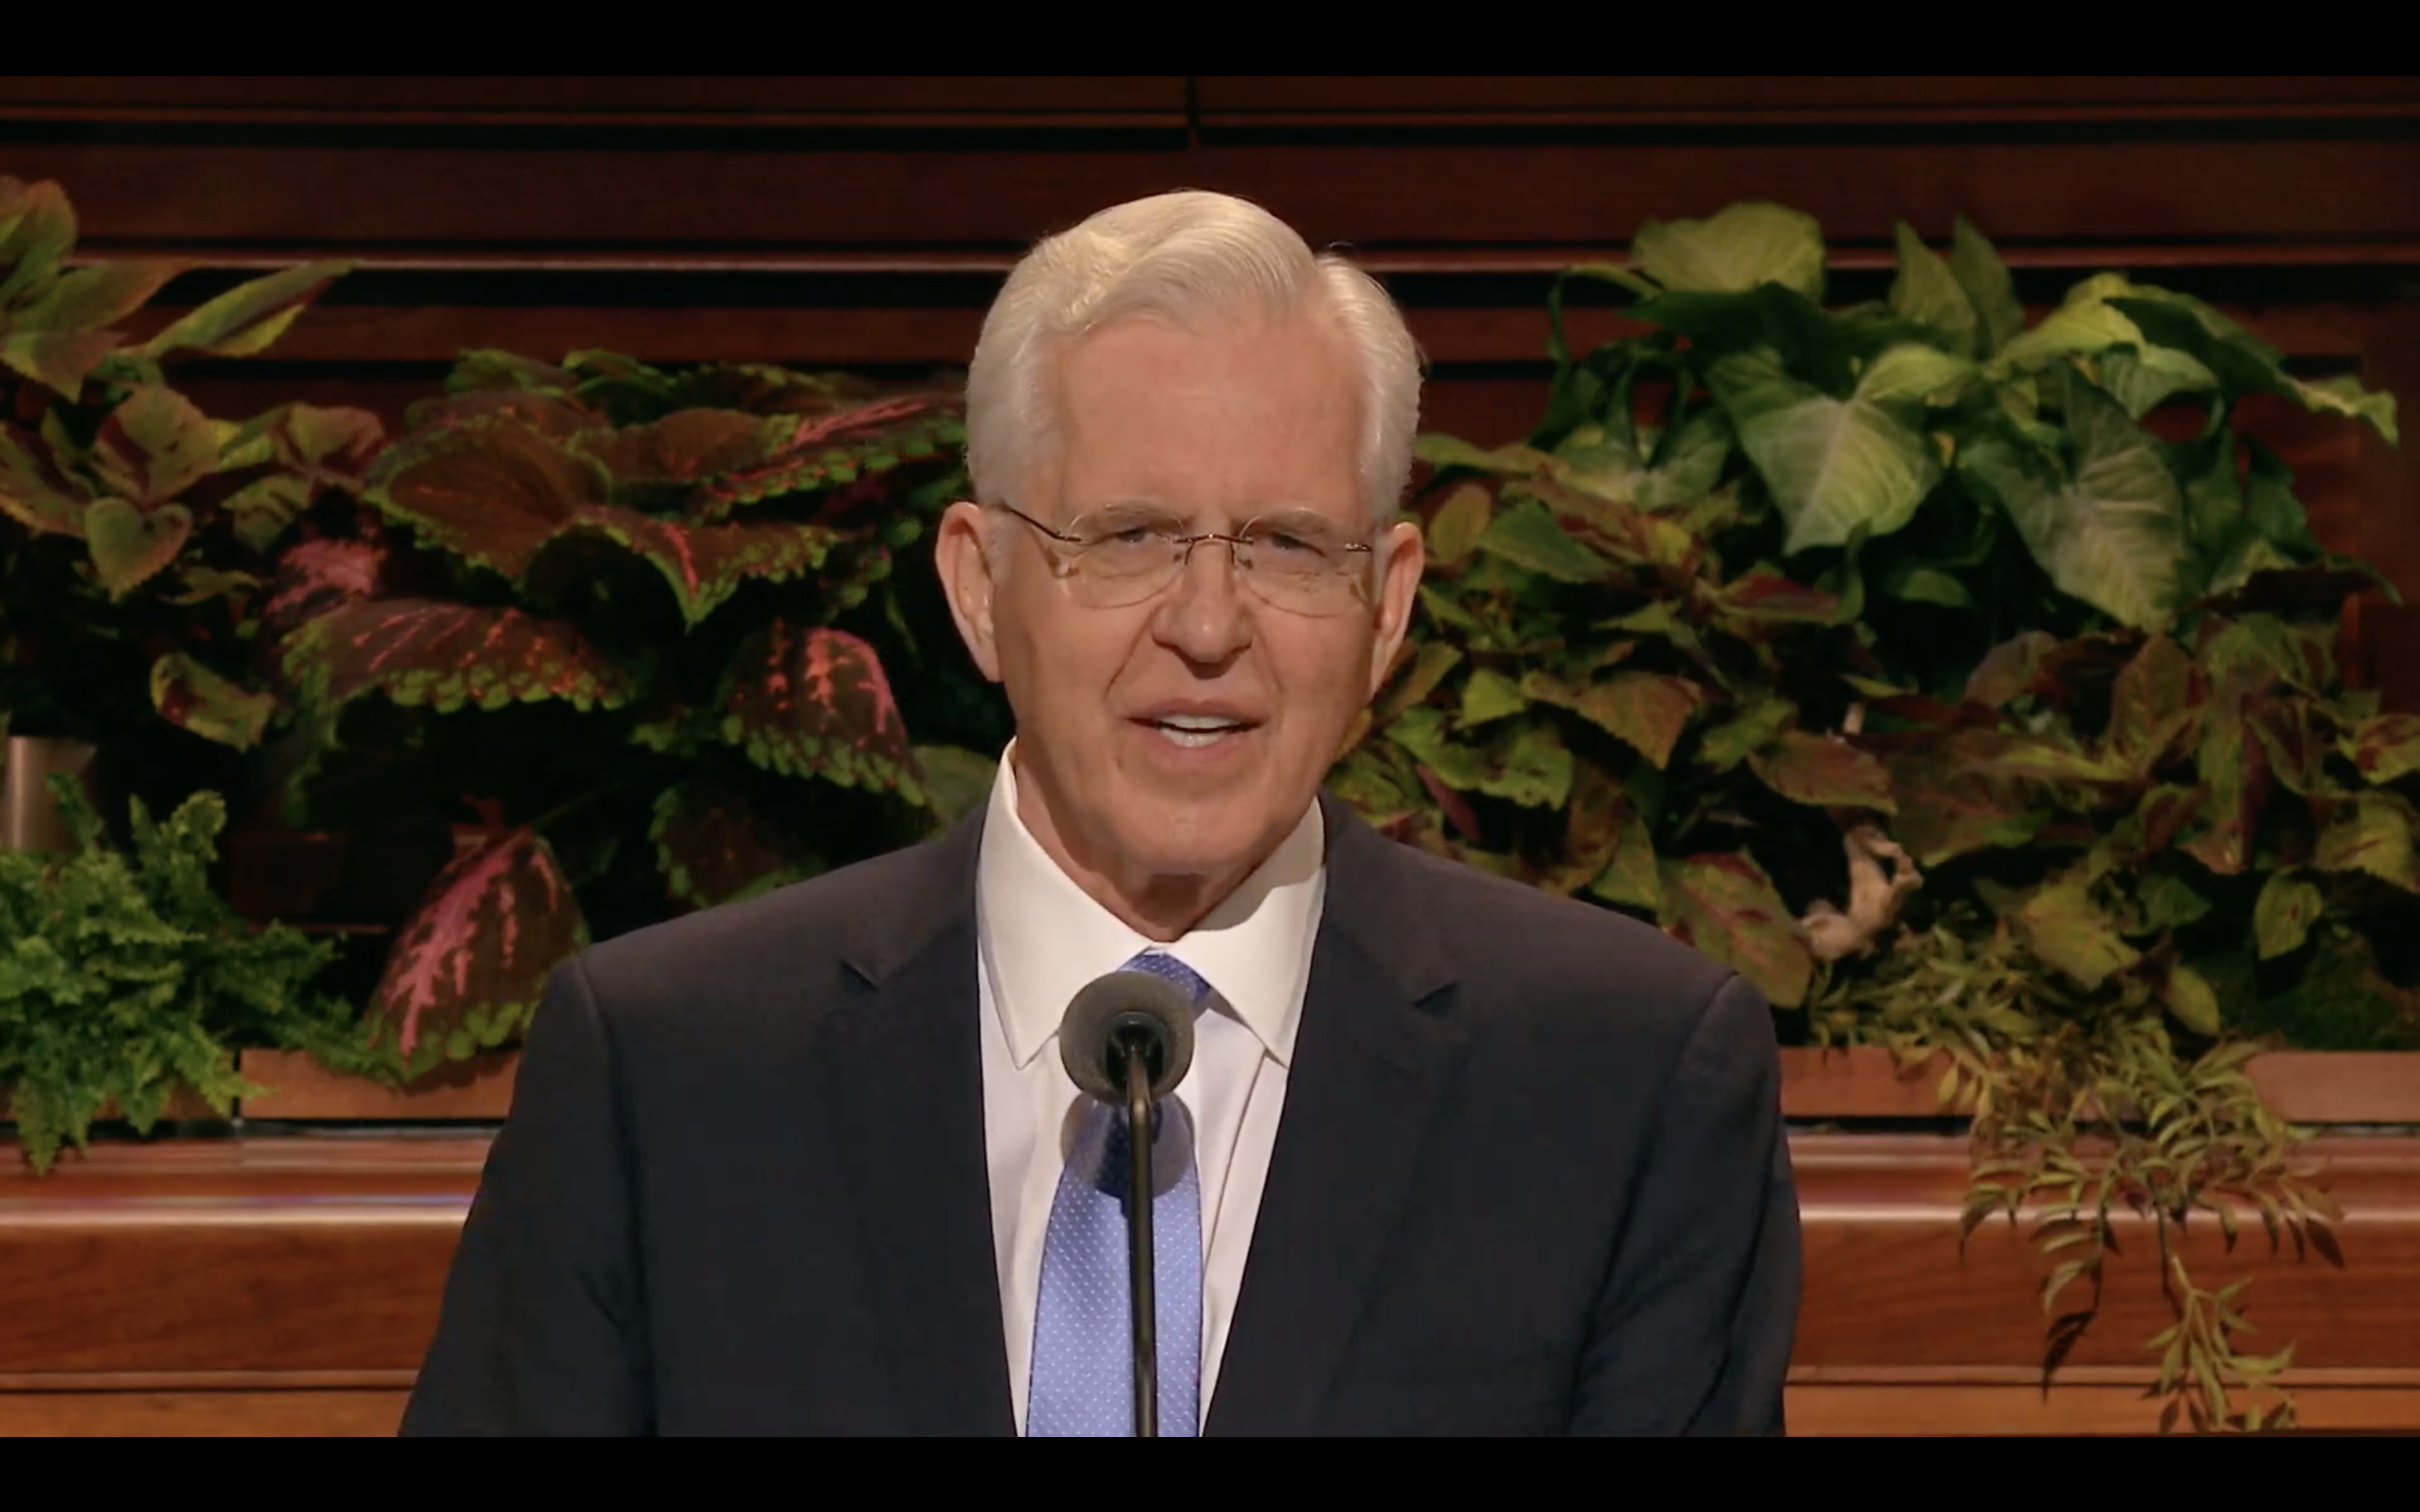 Elder D. Todd Christofferson of the Quorum of the Twelve Apostles speaks during the Saturday morning session in the 189th Semiannual General Conference of the Church on Oct. 5, 2019.